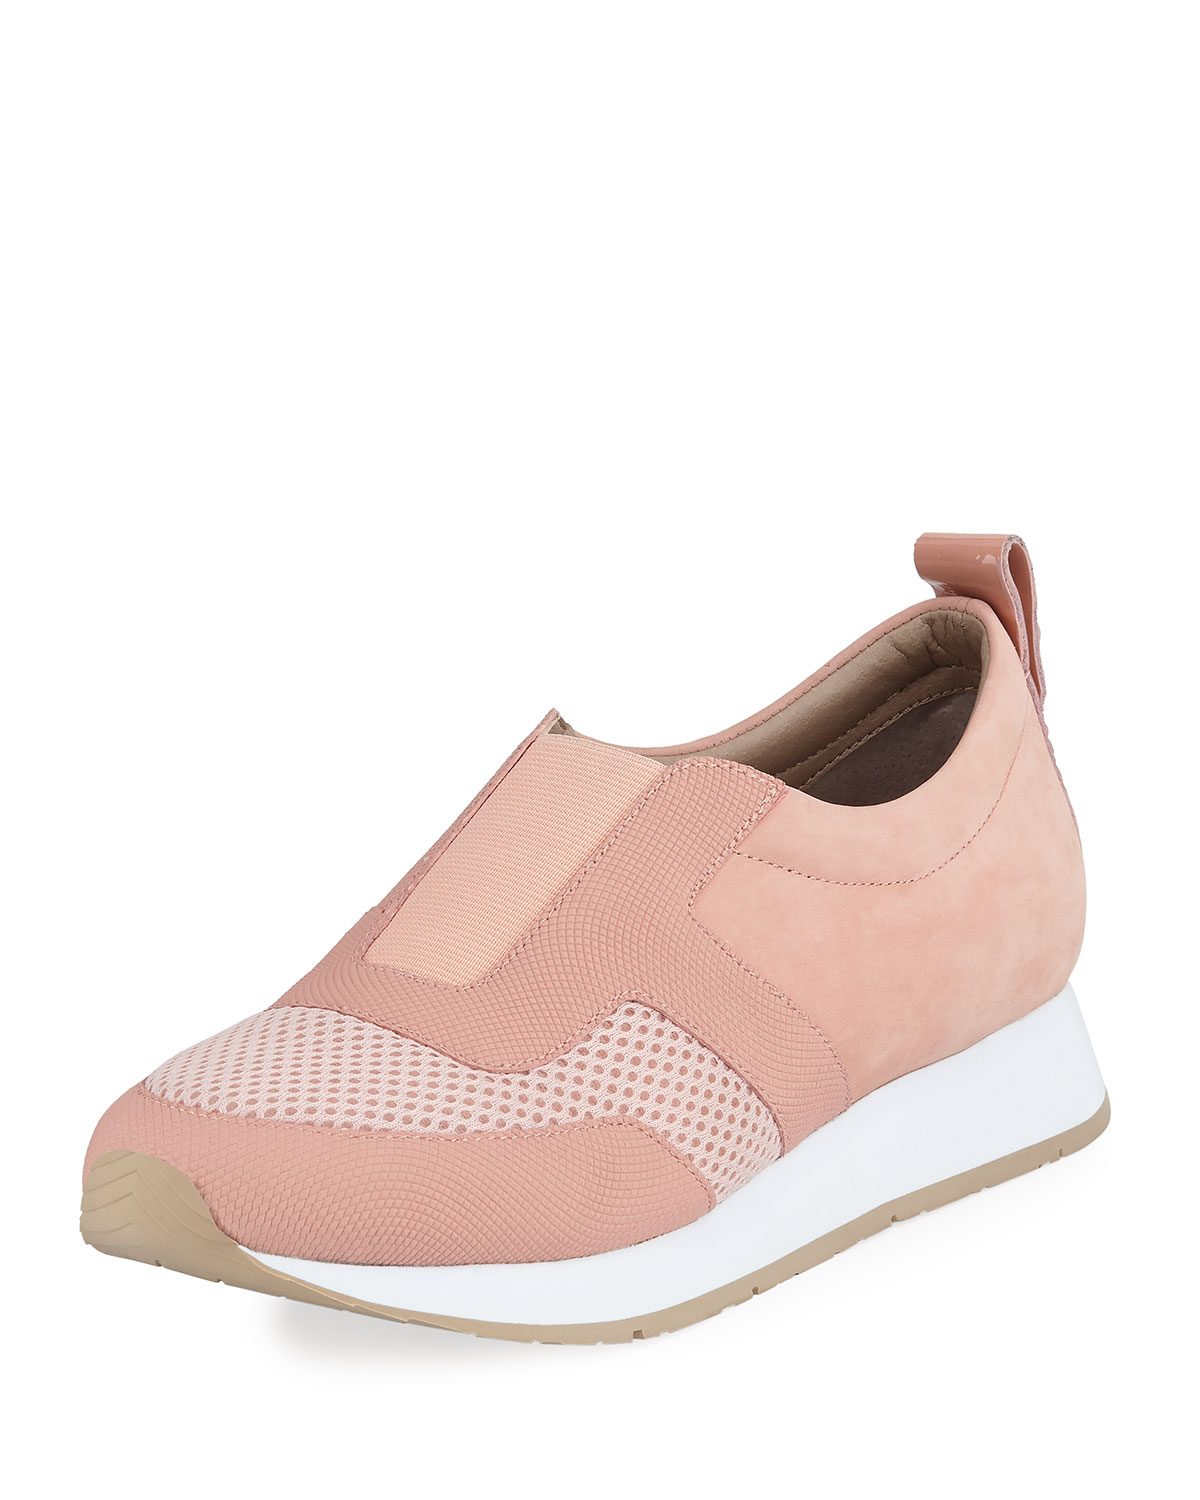 Donald J Pliner Rie Mixed Leather Sneakers  956476876